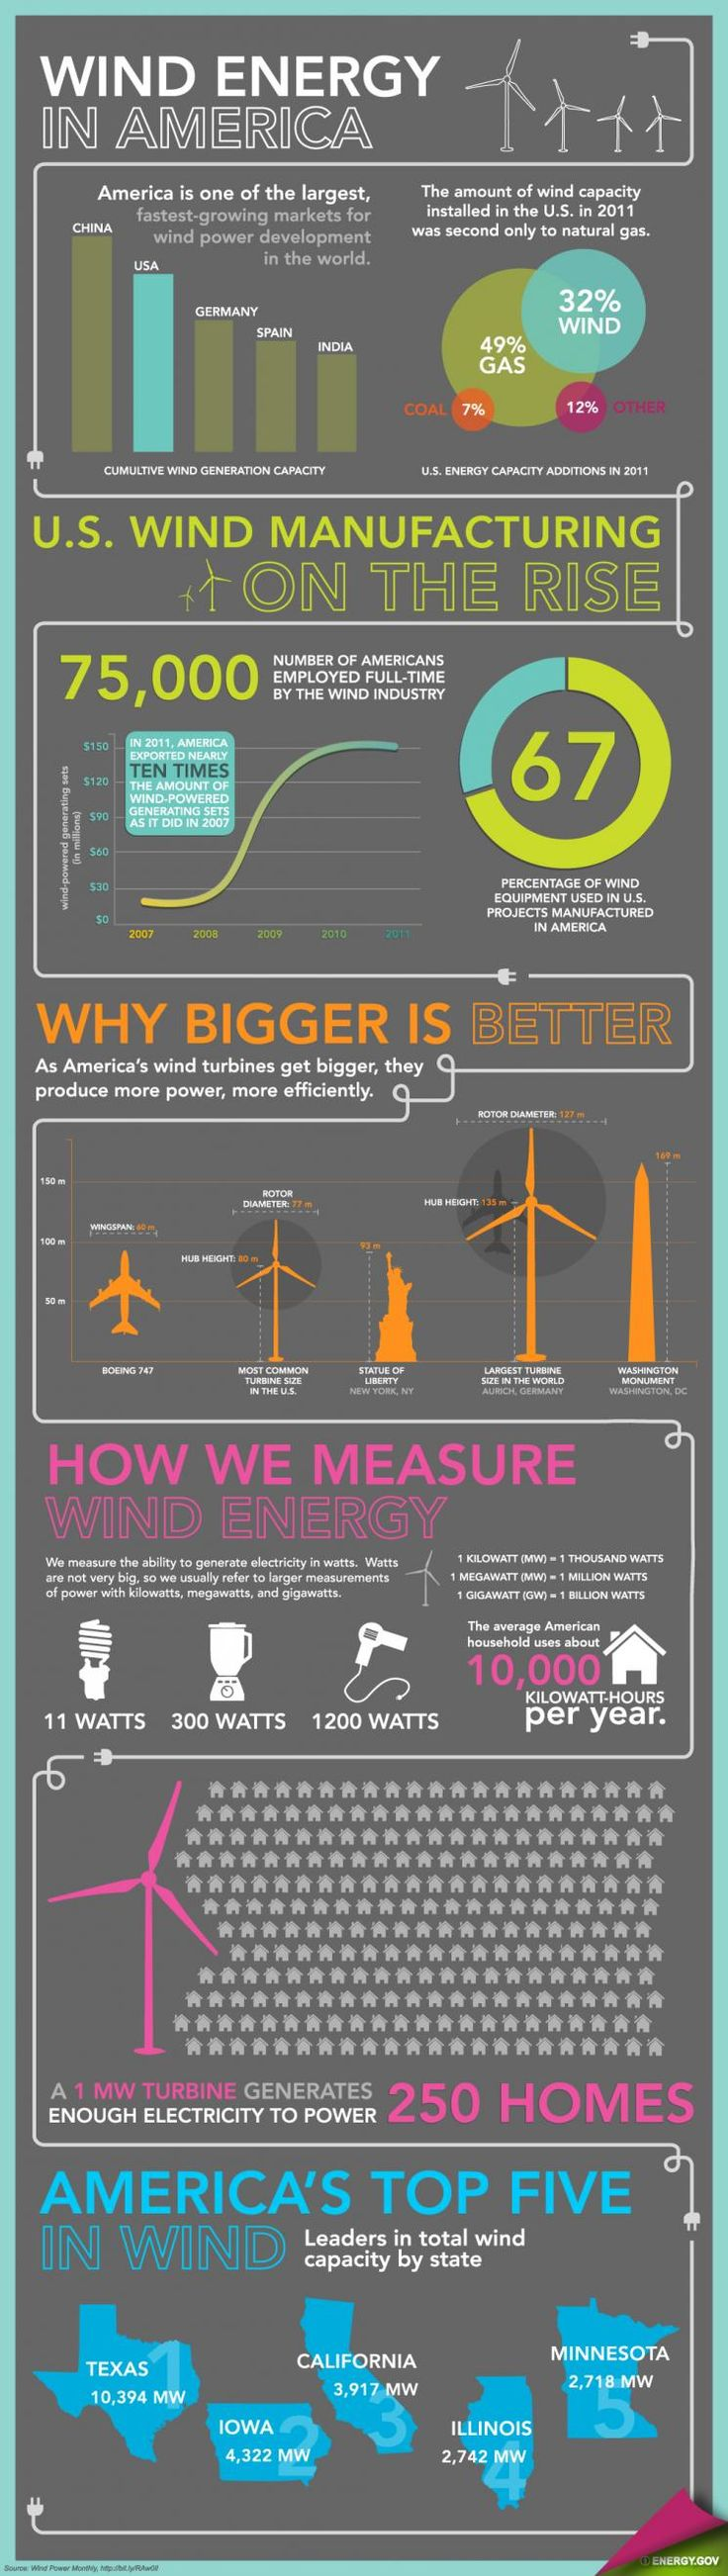 Wind Energy in America Infographic. Wind energy doesn't create asthma worsening air pollution like coal energy does, or hazardous radioactive waste like nuclear energy does, or toxic chemical (and radioactive waste) pollution like fracking for natural gas can.